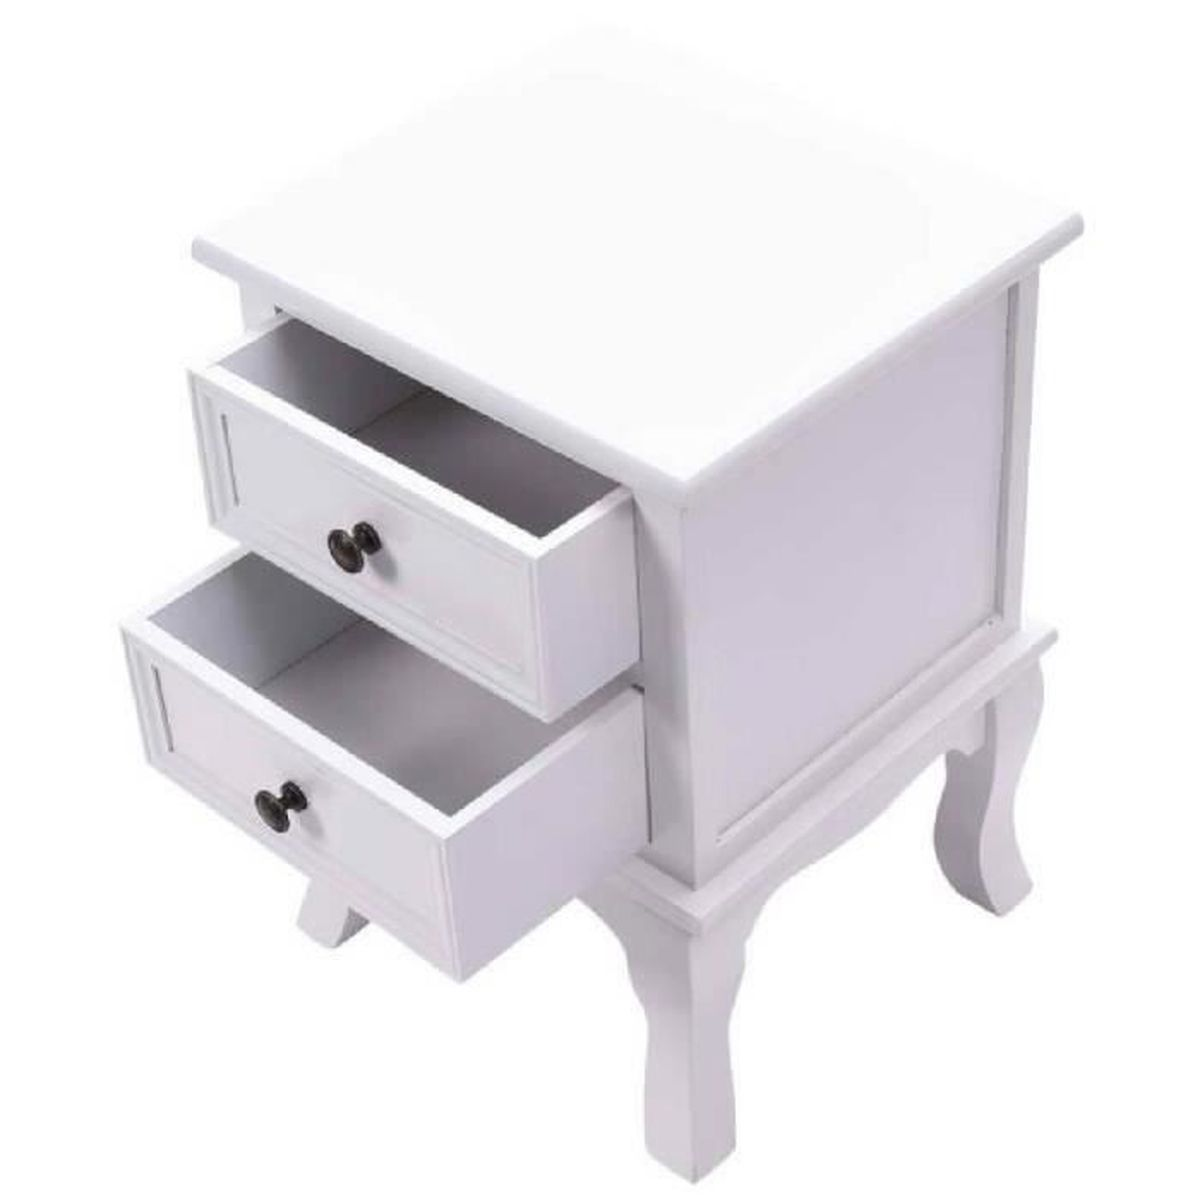 table de chevet commode meuble chambre coucher 2 tiroirs table de nuit blanc achat vente. Black Bedroom Furniture Sets. Home Design Ideas